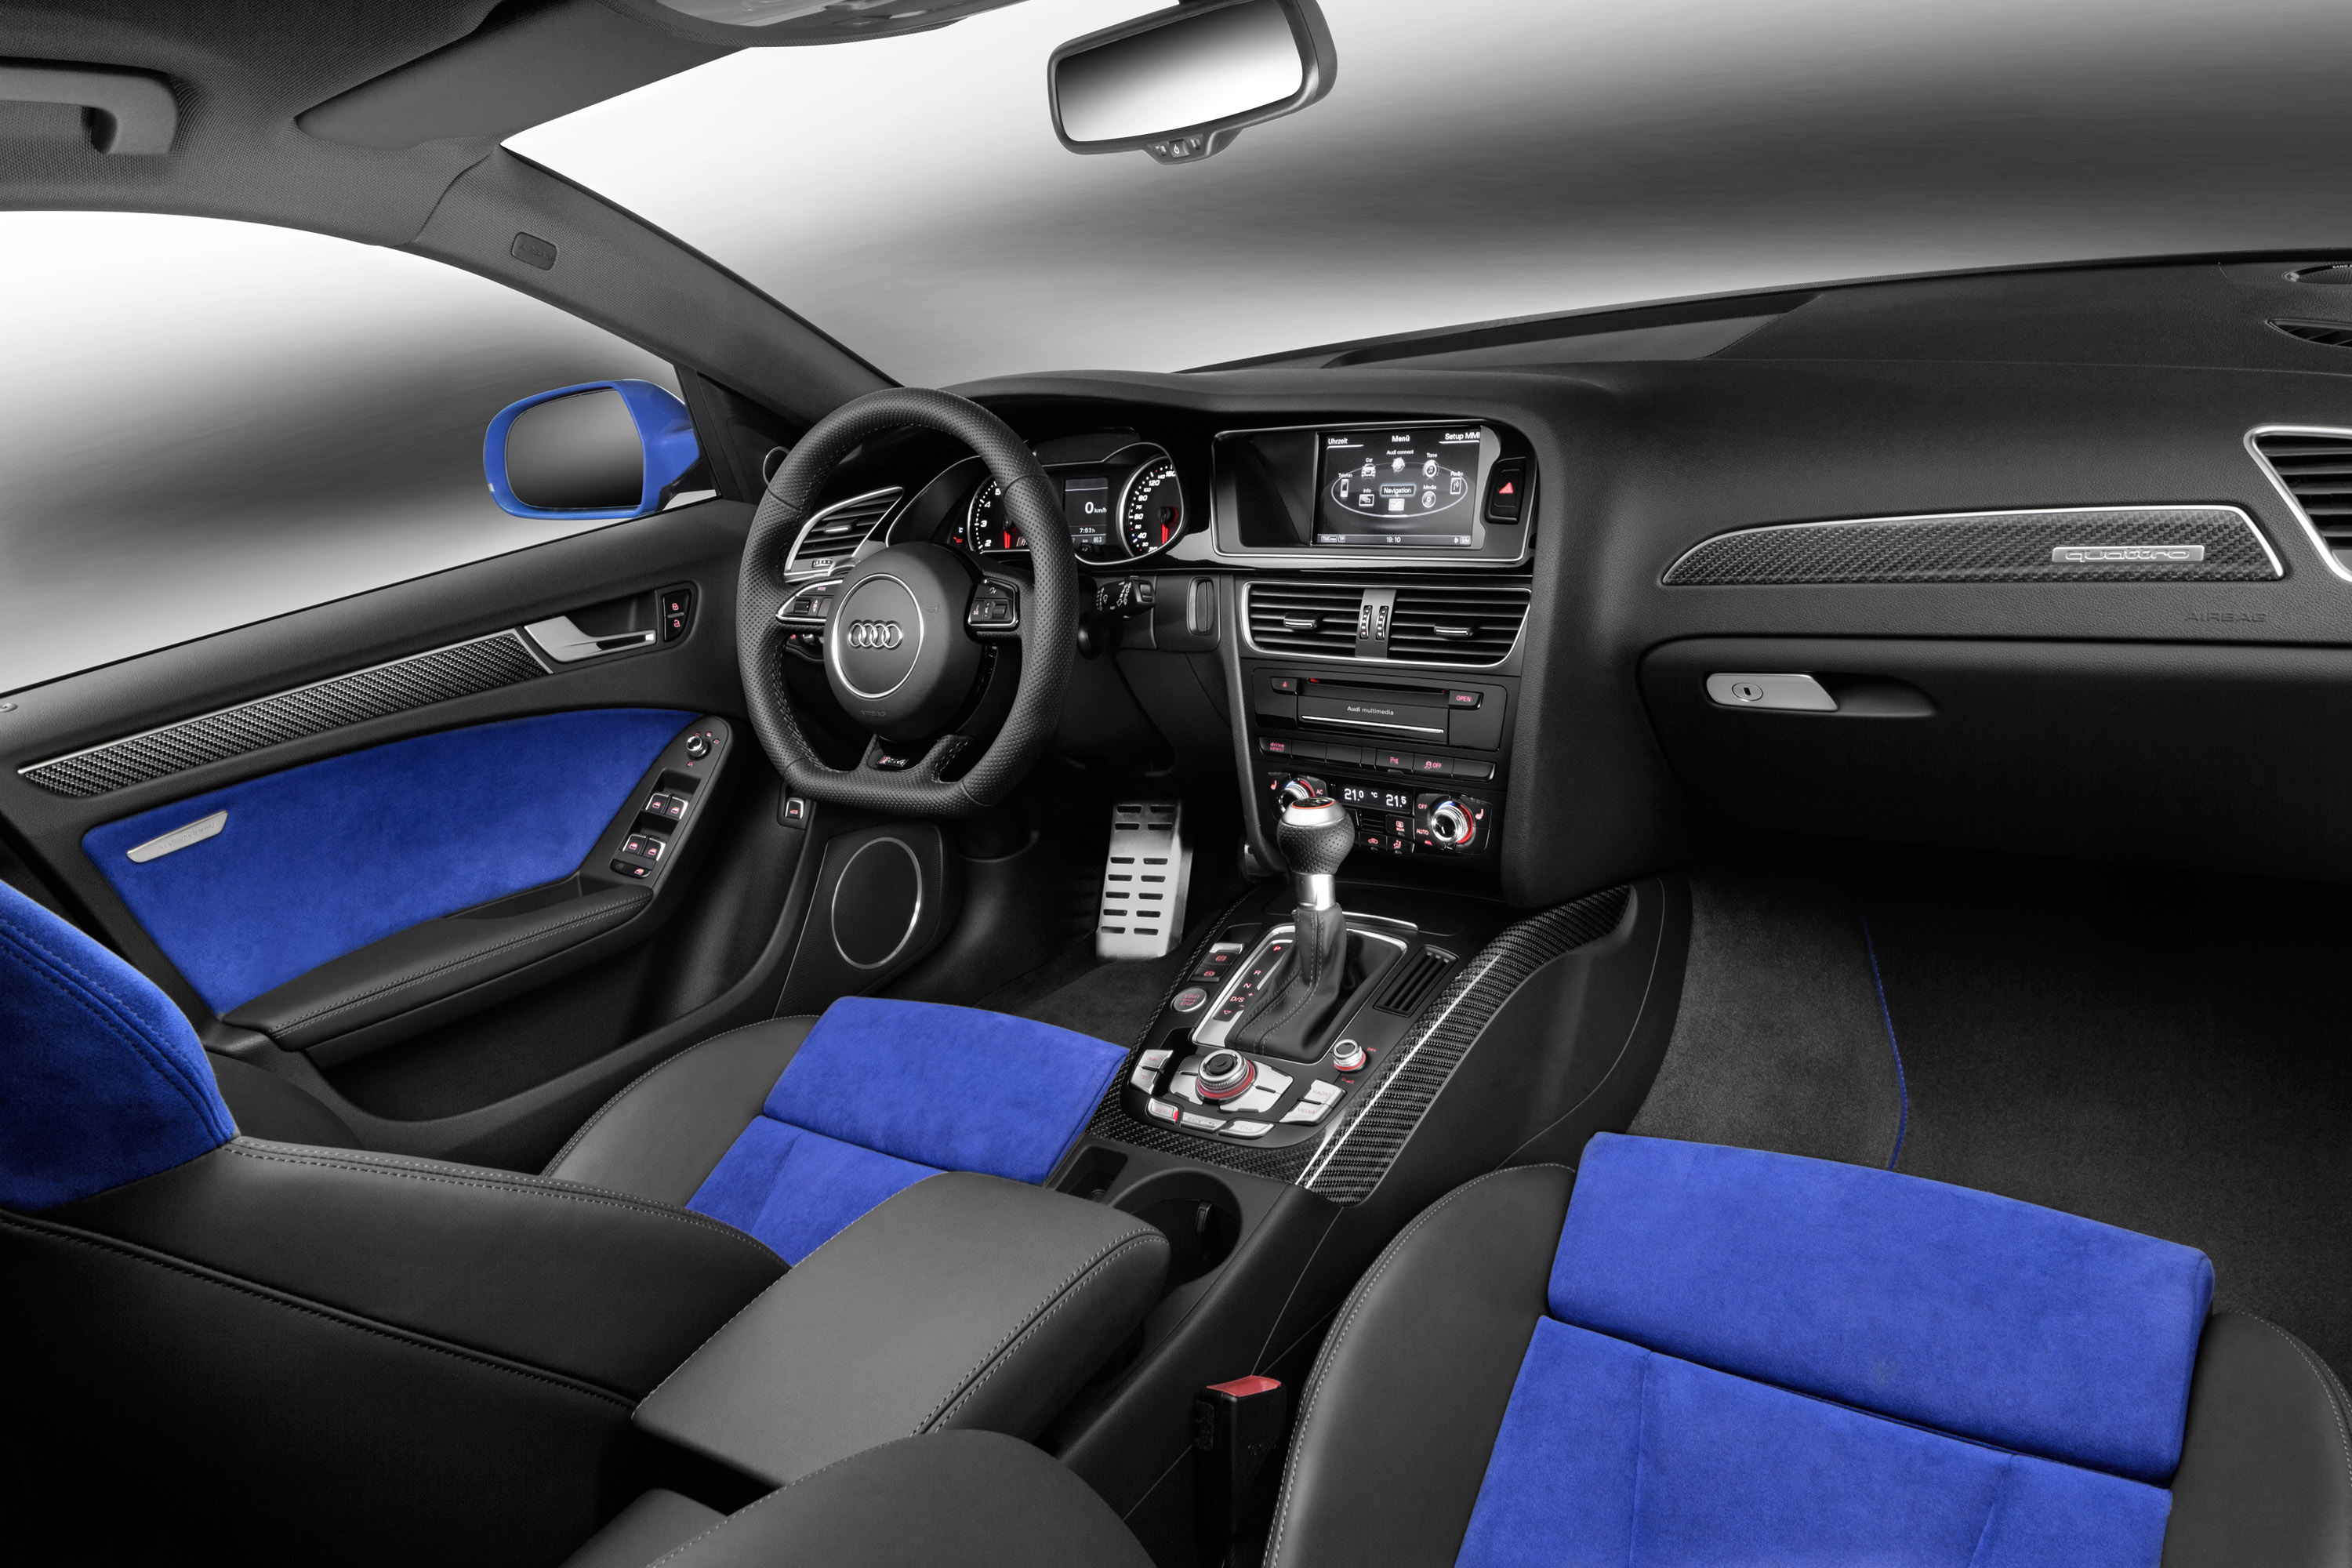 http://www.automobilesreview.com/gallery/2014-audi-rs4-avant-nogaro/2014-audi-rs4-avant-nogaro-06.jpg